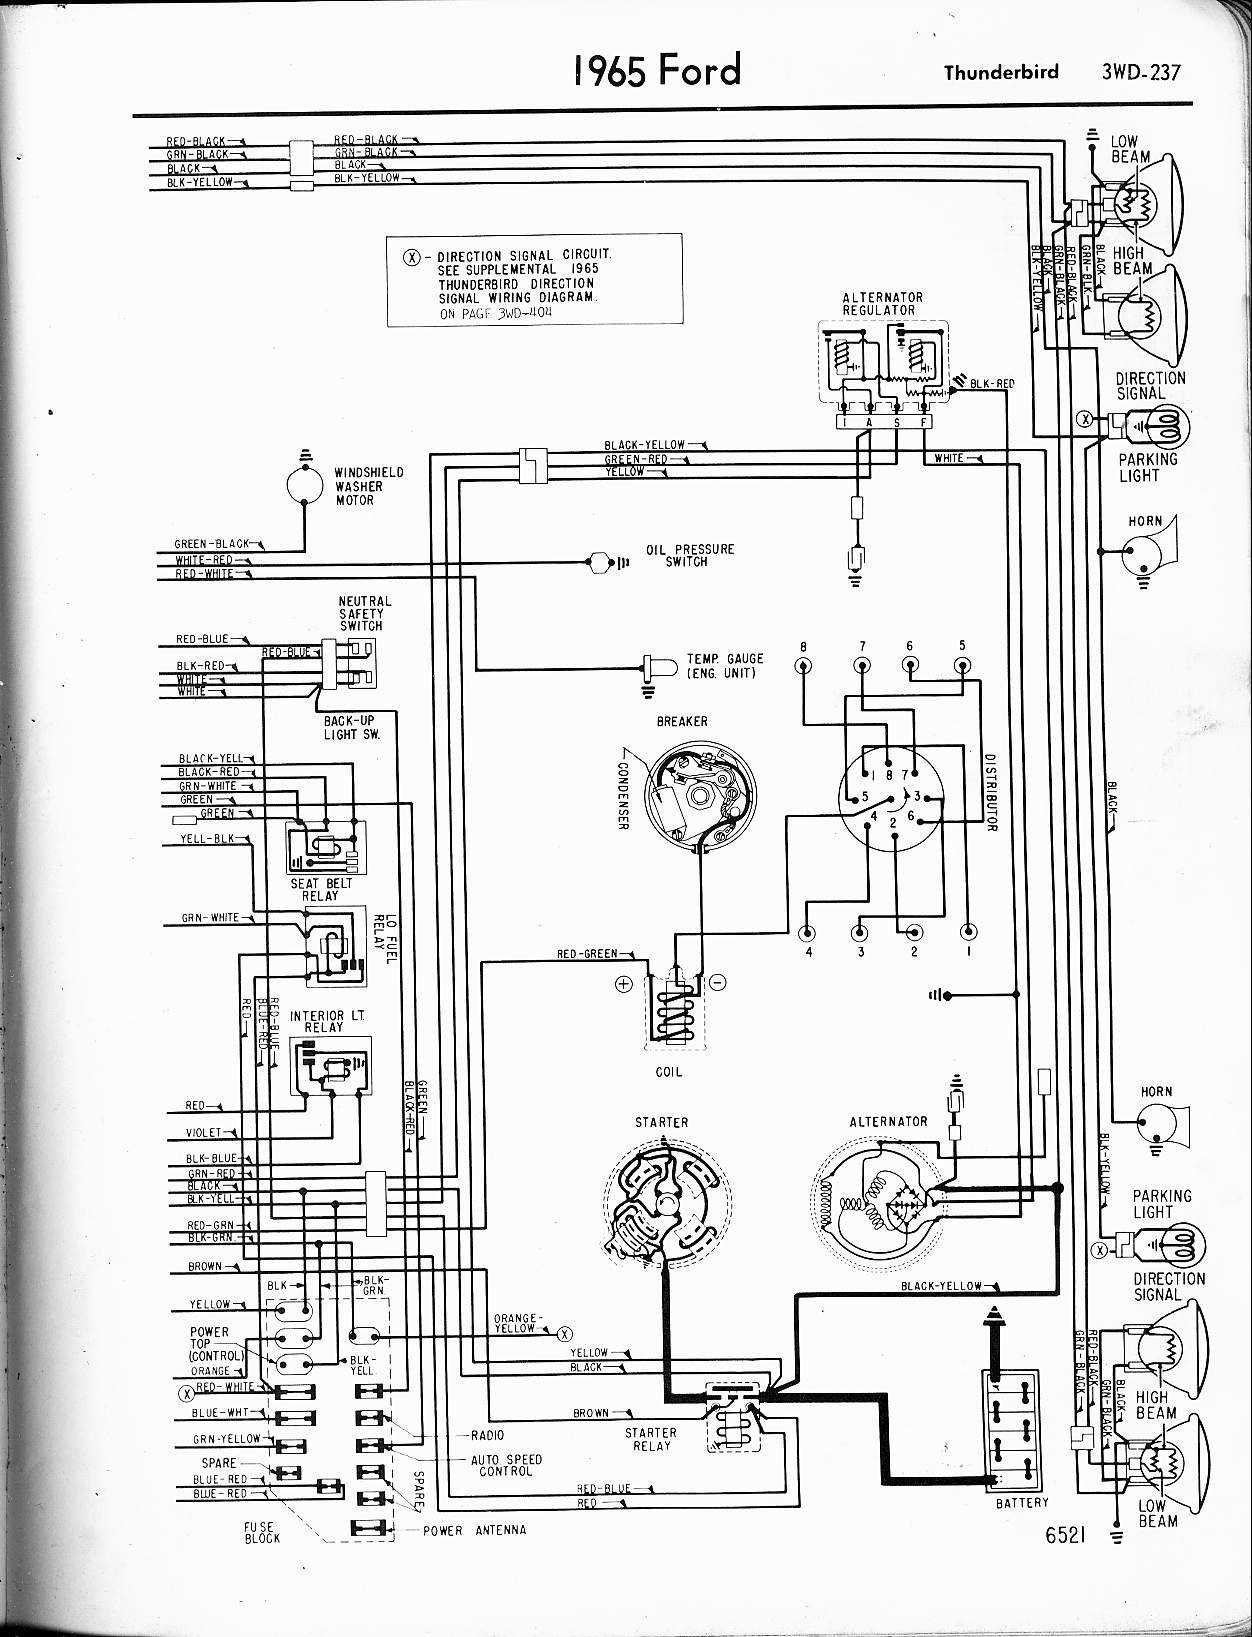 Car Battery Wiring Diagram ford Econoline Wiring Diagram Also 1966 ford Thunderbird Wiring Of Car Battery Wiring Diagram